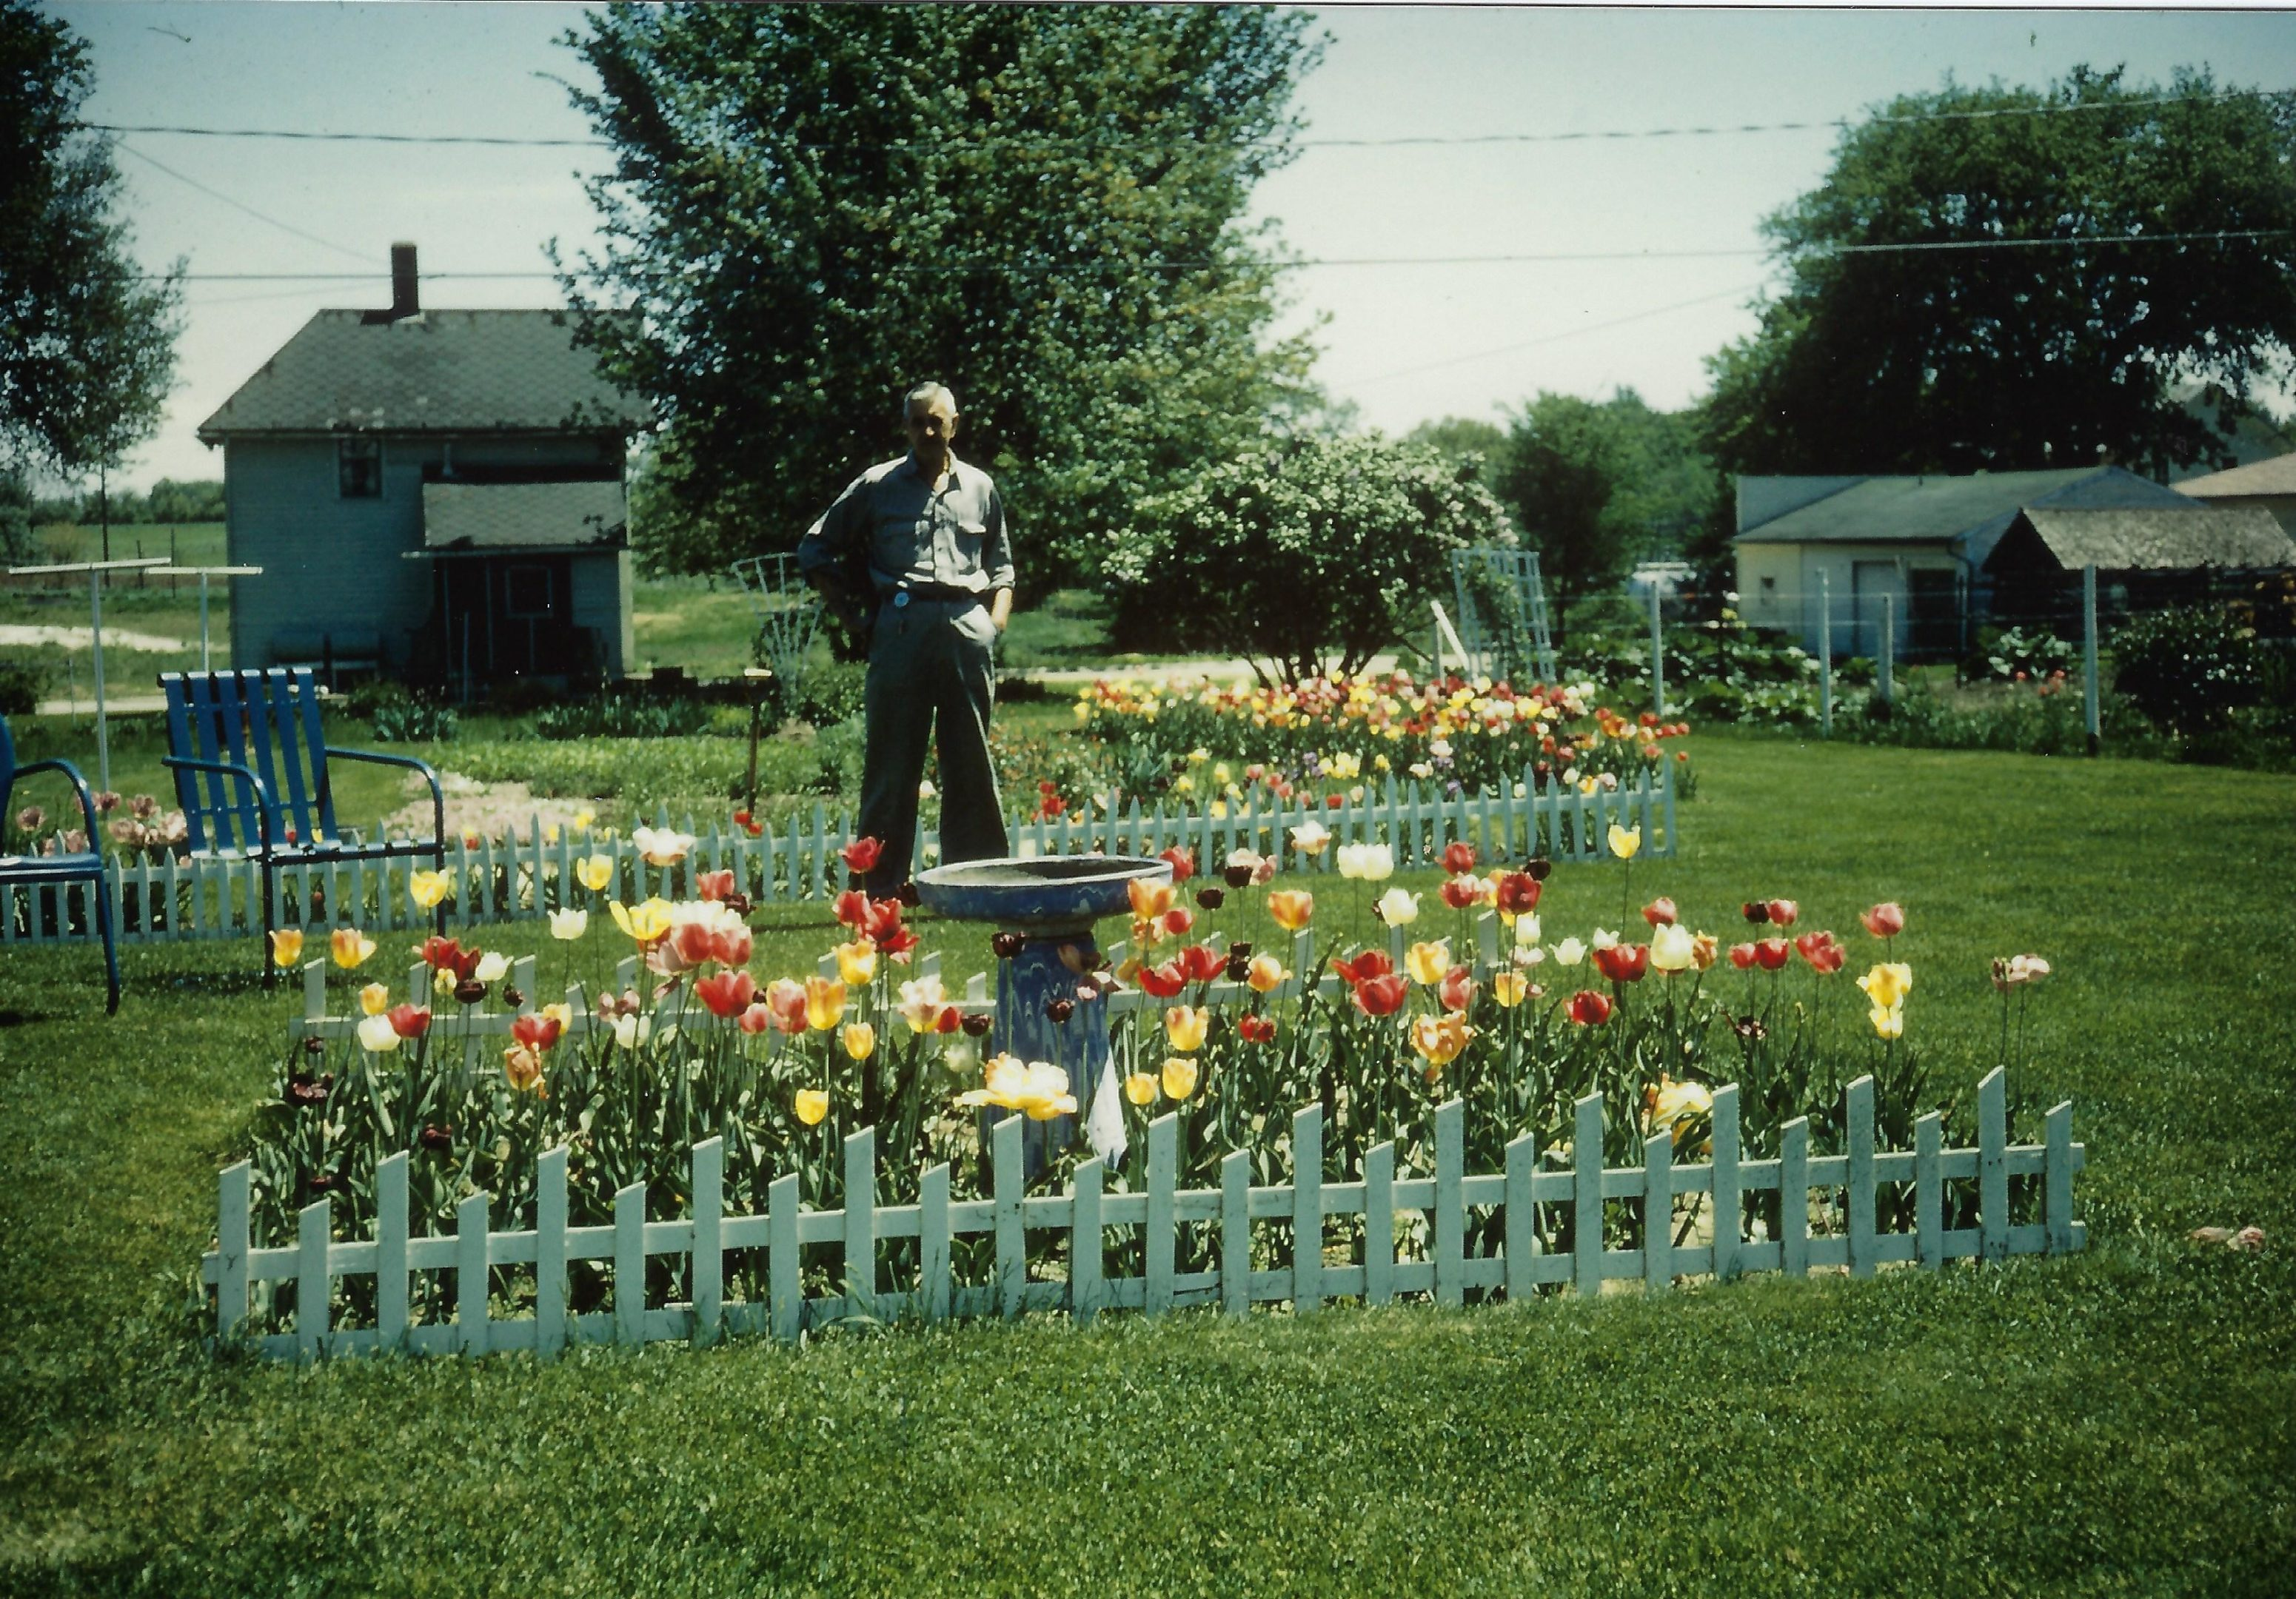 Photo of Max Sievers standing in his yard at 410 Second Avenue NW